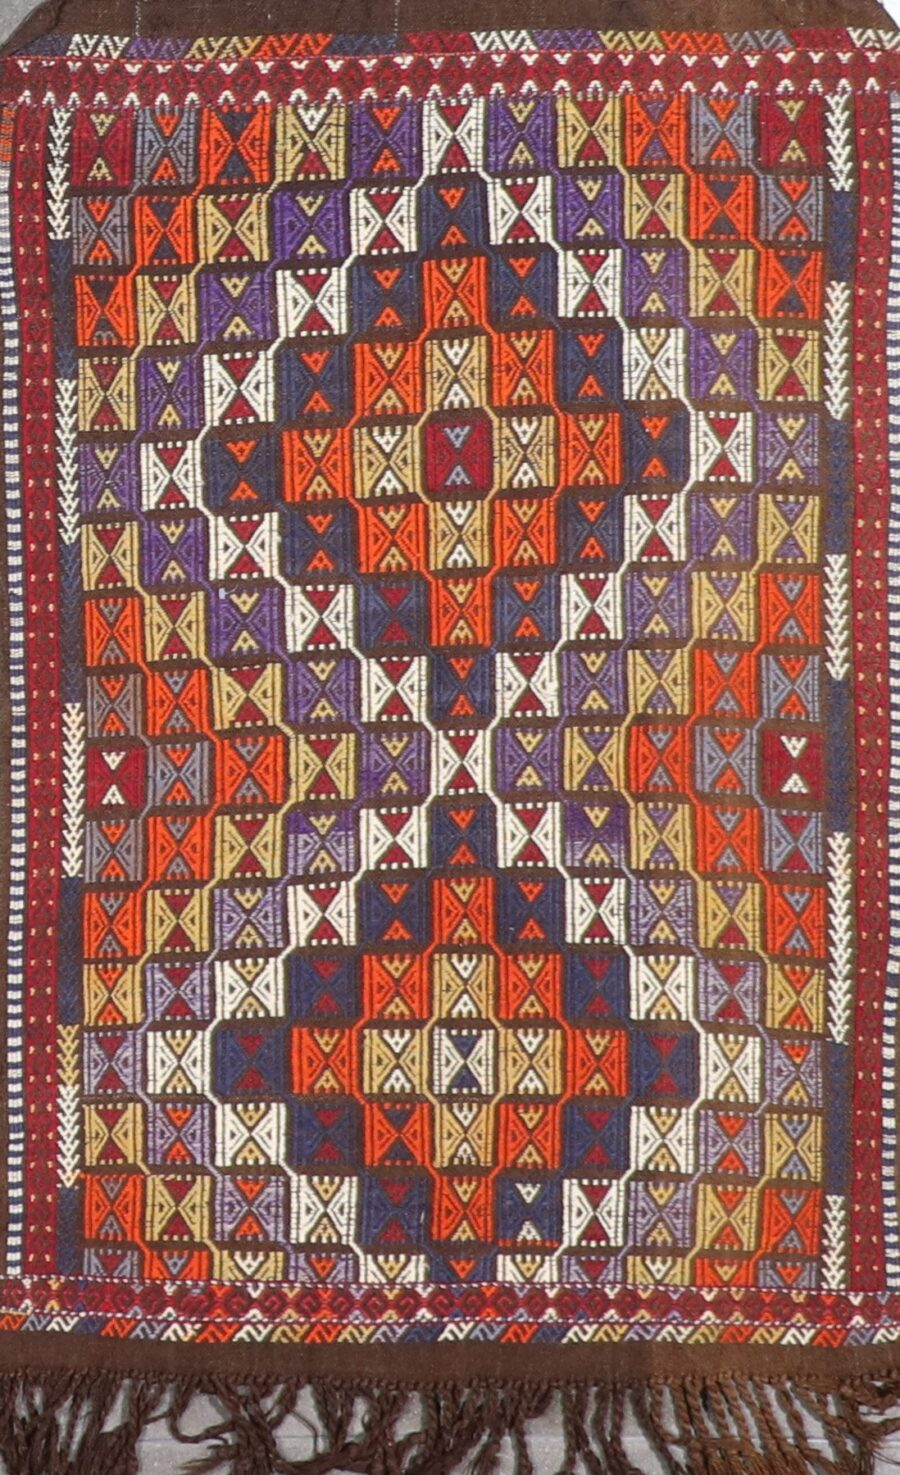 """3'6""""x5' Persian Kilim Multi-Colored Wool Hand-Knotted Rug - Direct Rug Import 